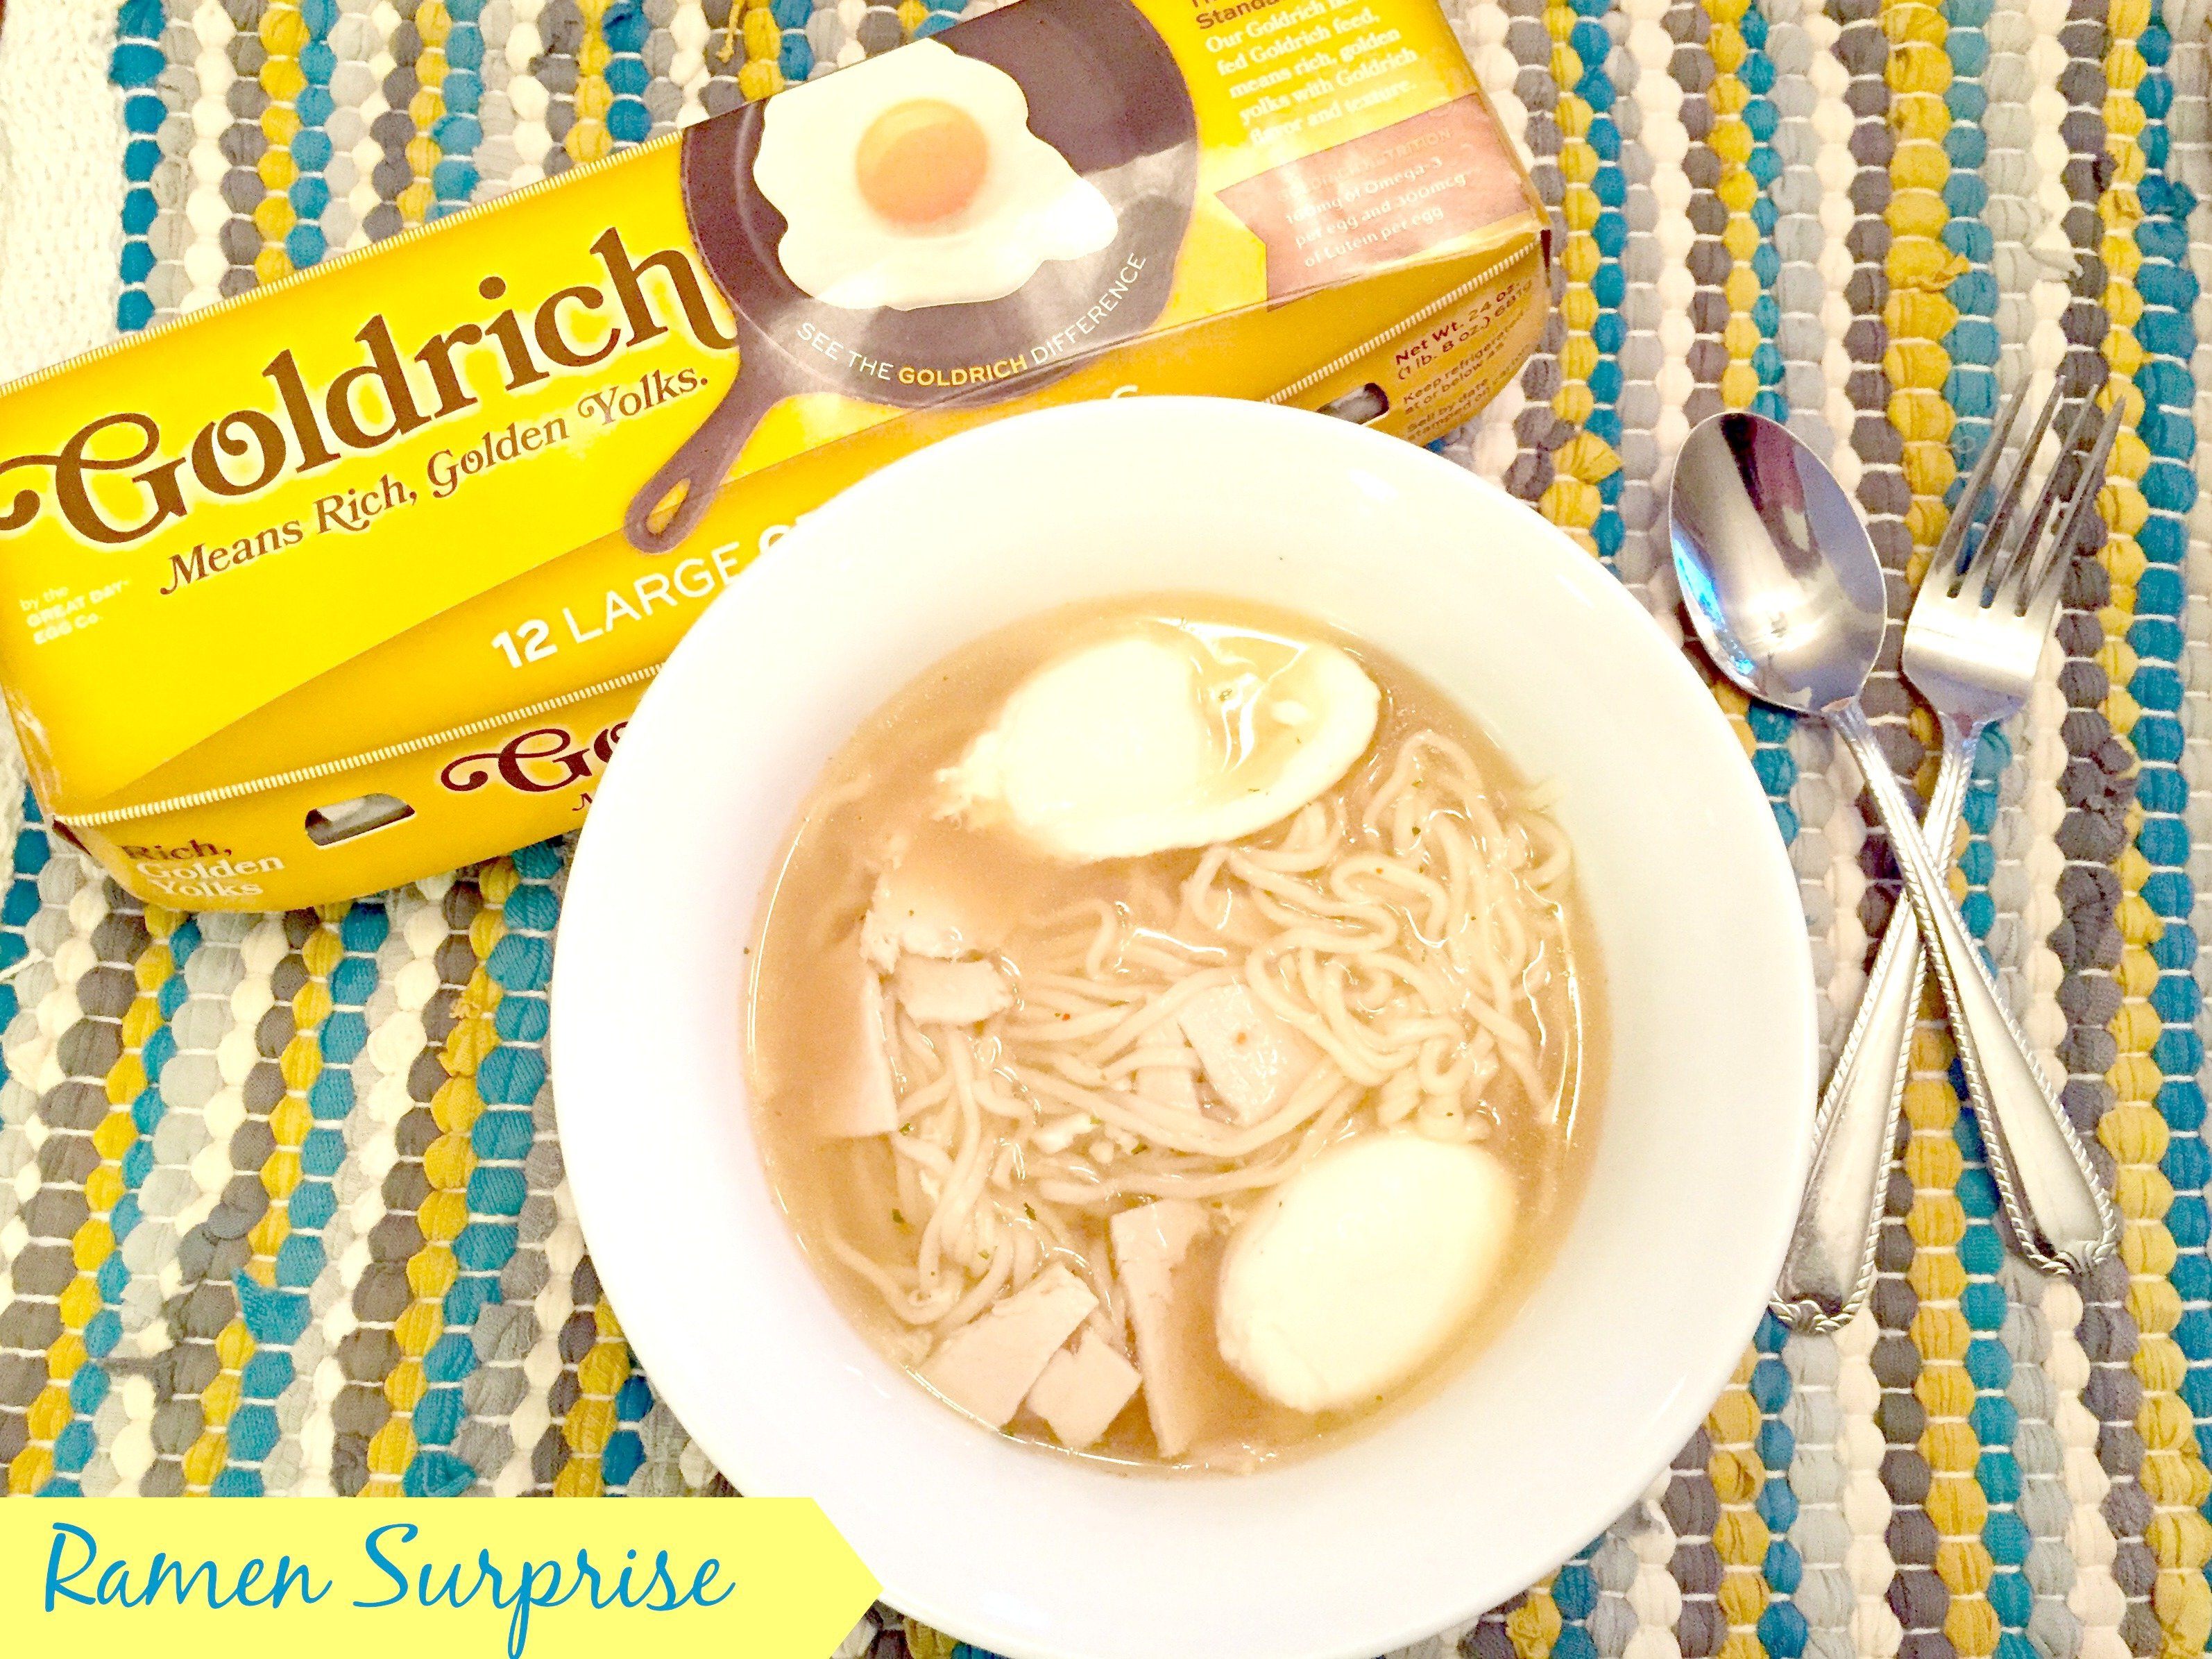 GoldRich Yolk - Ramen Surprise - Recipe 1